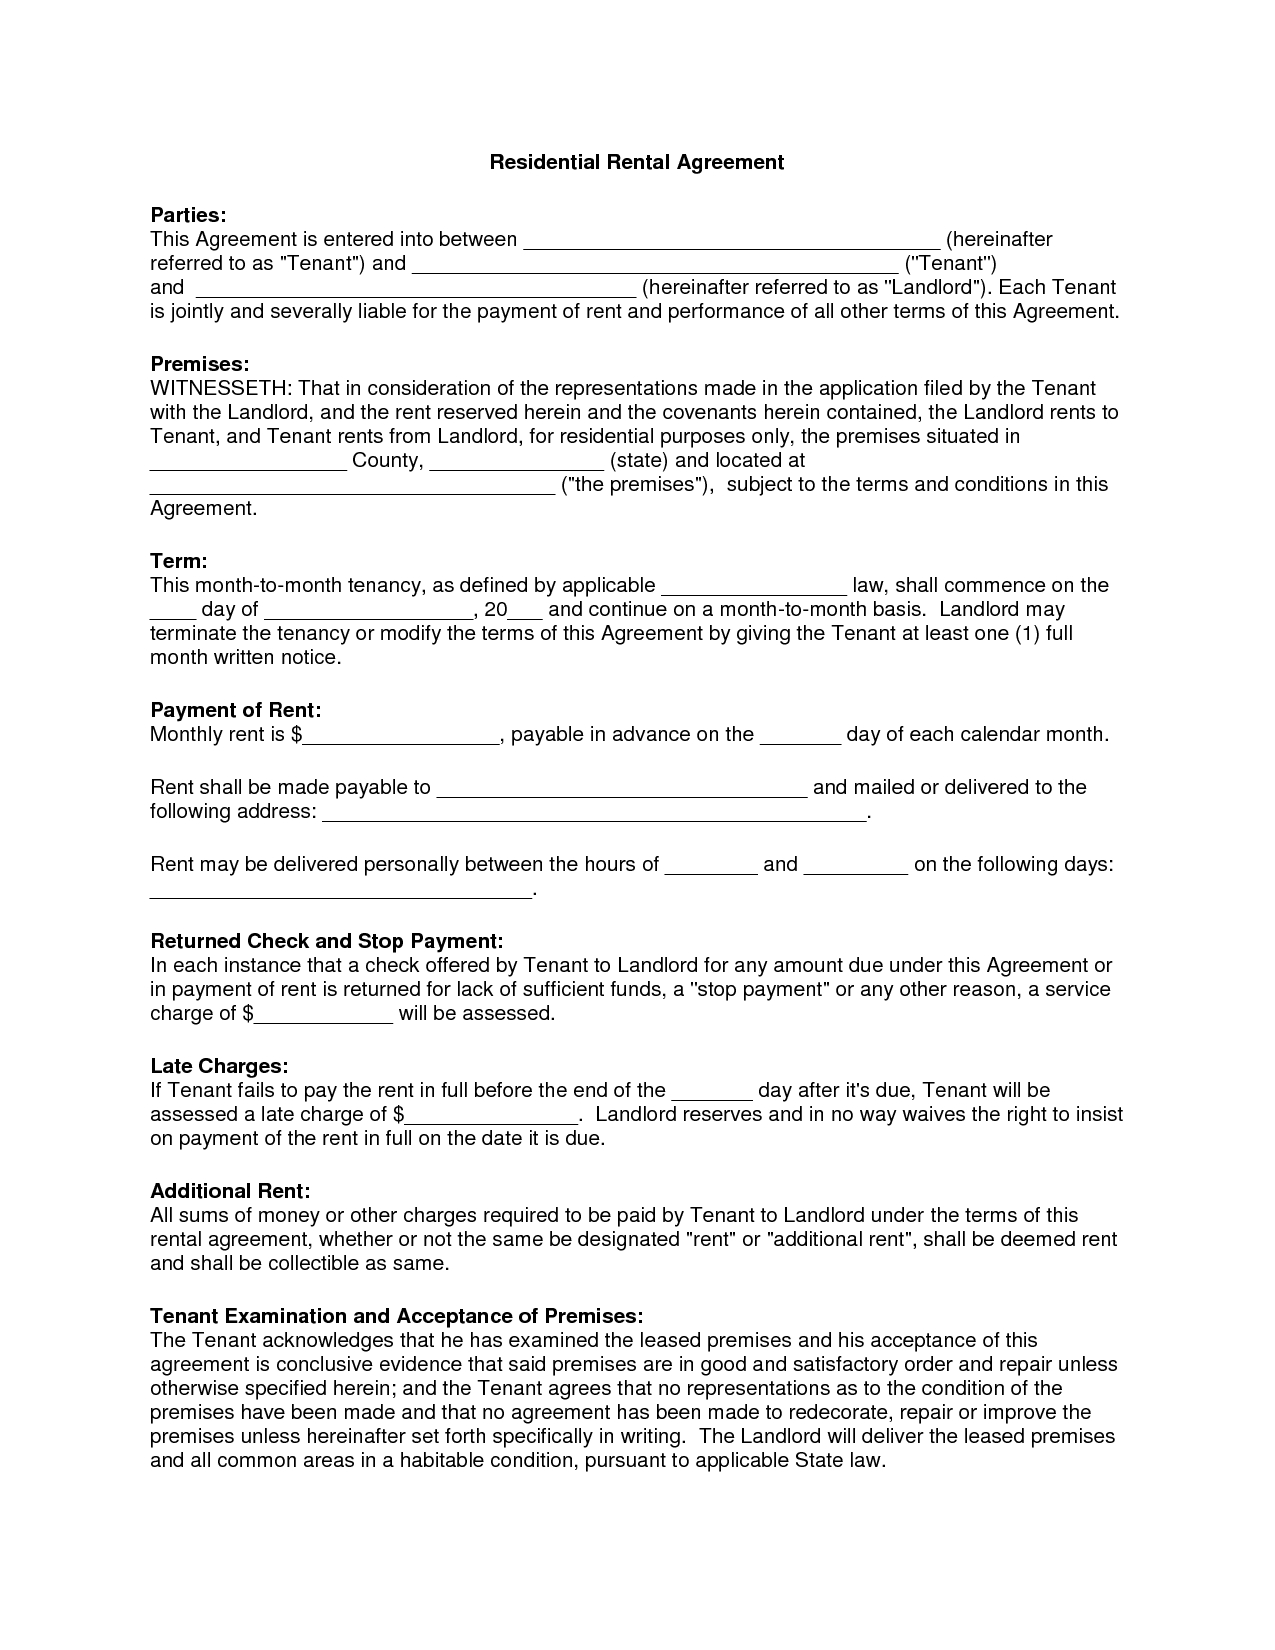 Free Copy Rental Lease Agreement | Residential Rental Agreement - Free Printable Rental Lease Agreement